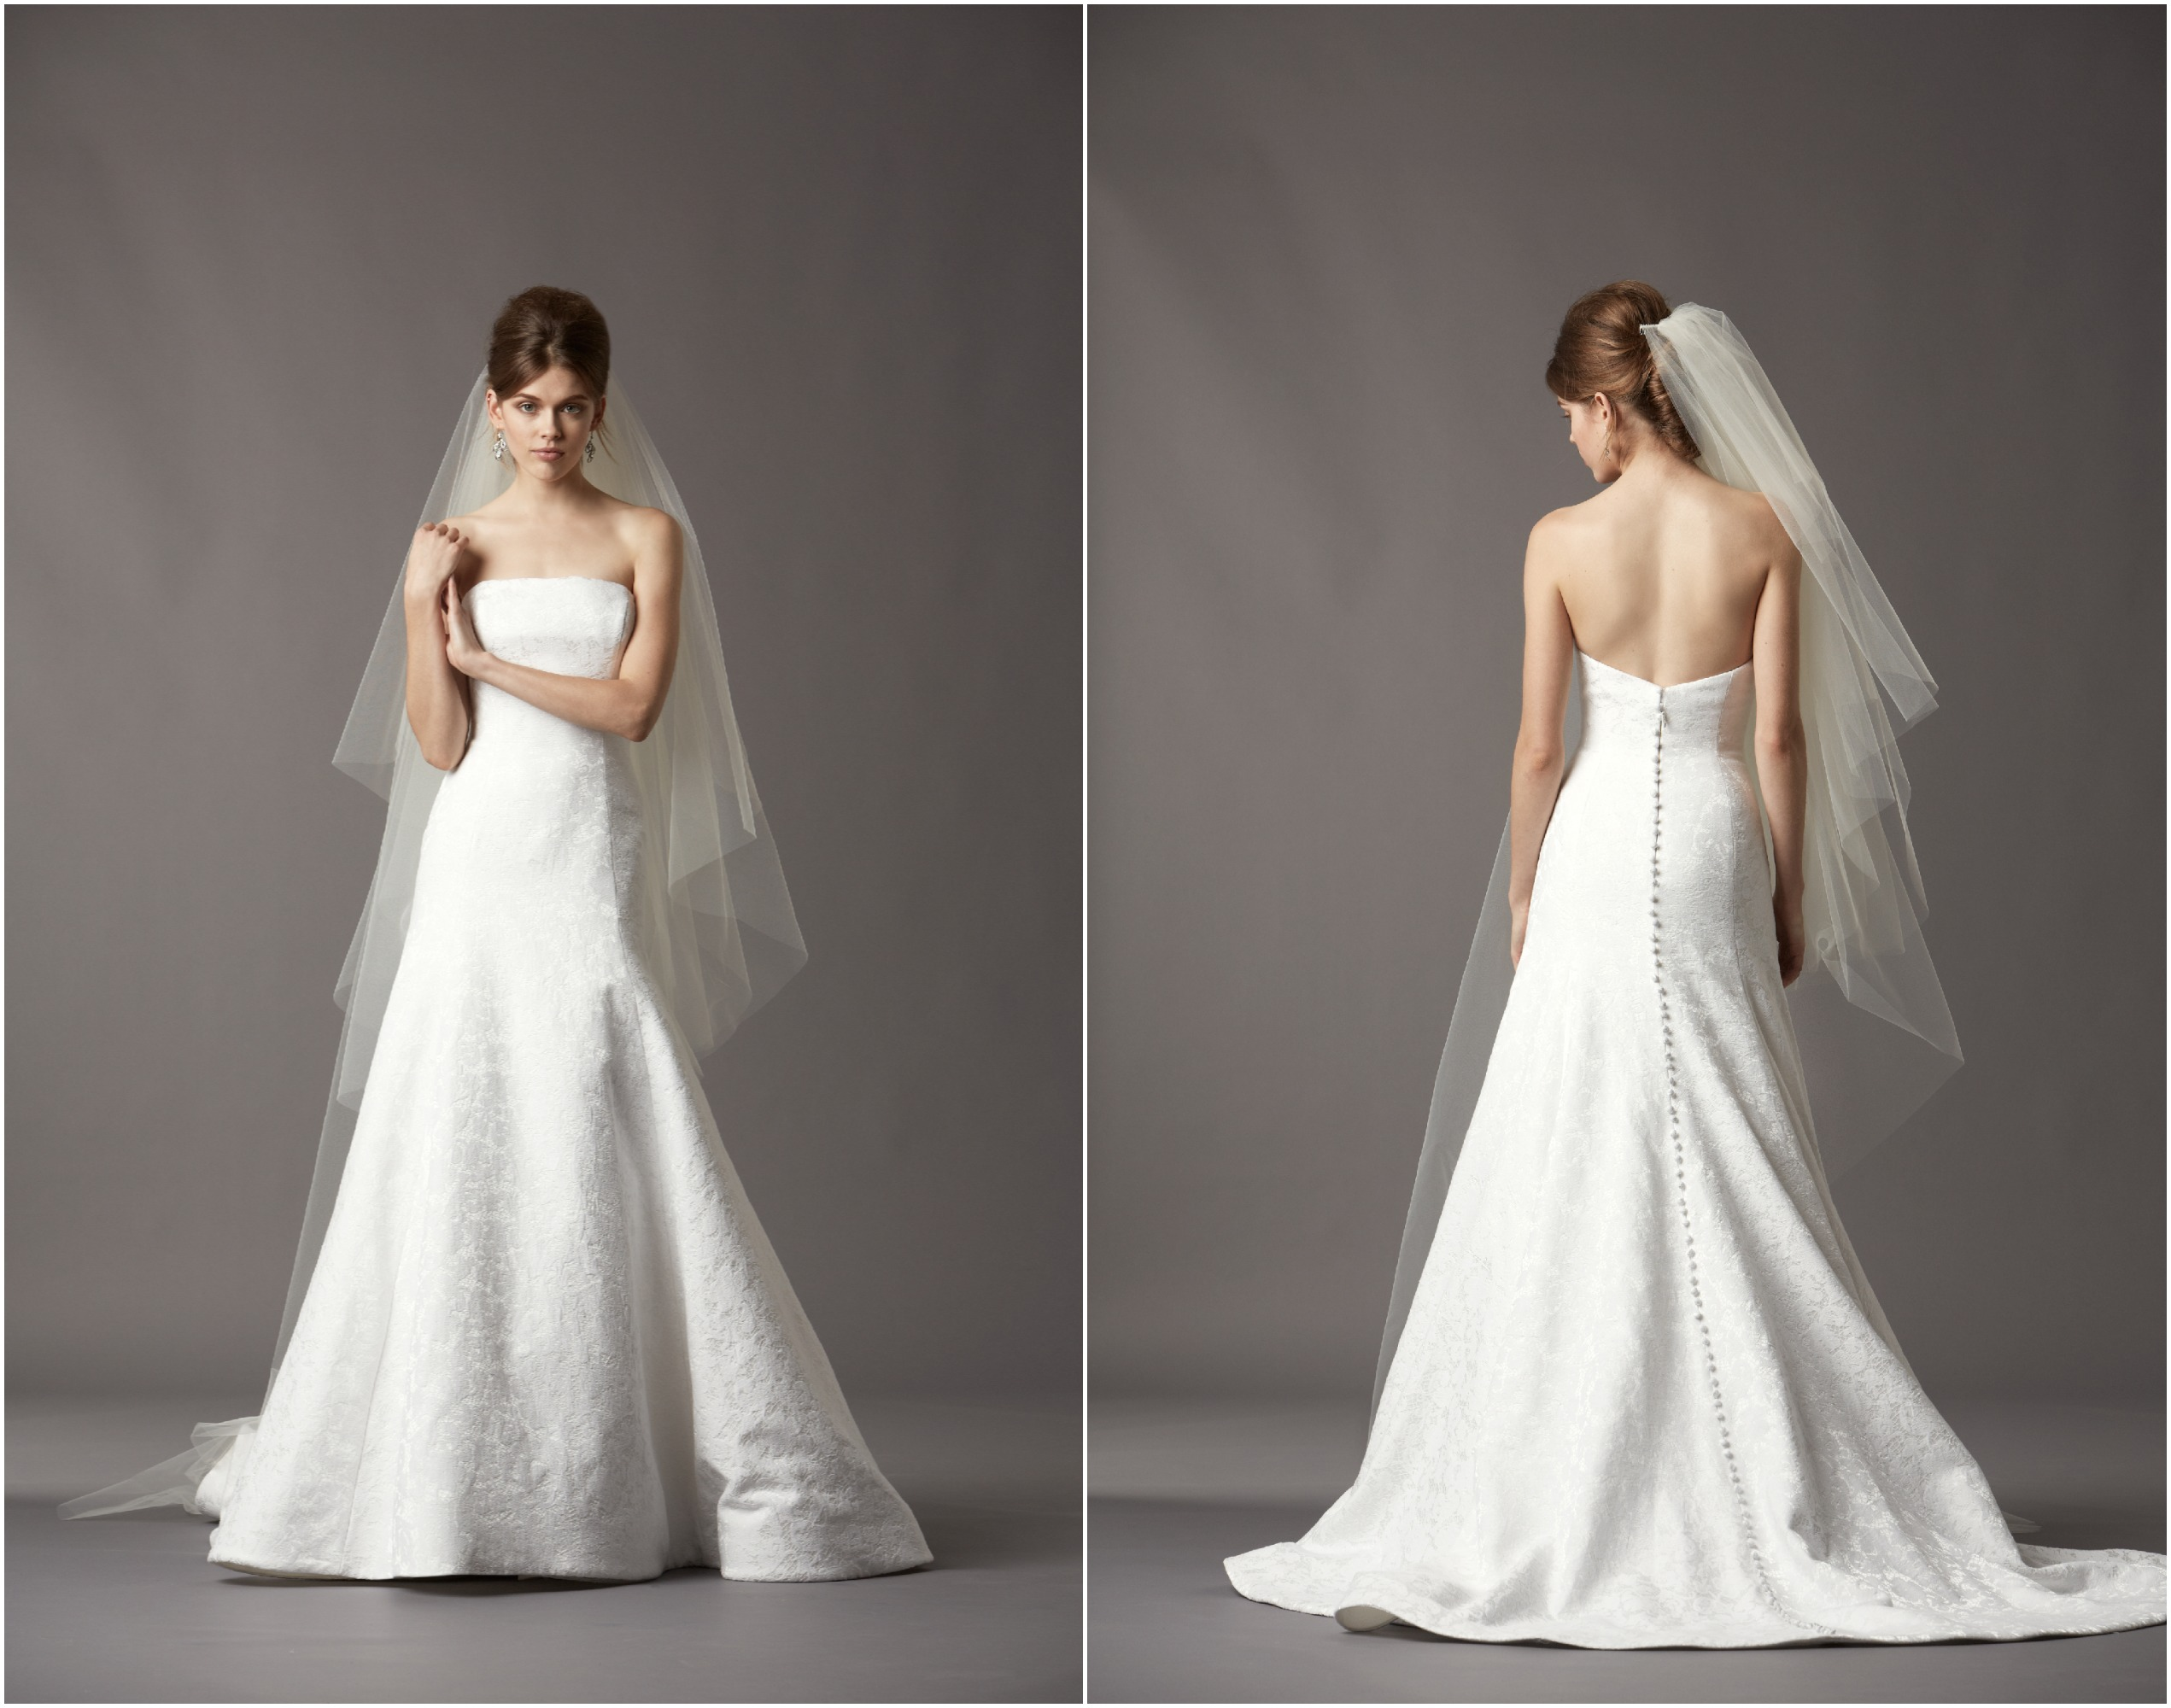 Chic And Simple Wedding Dresses By Cabotine: Watters Fall 2013 Collection